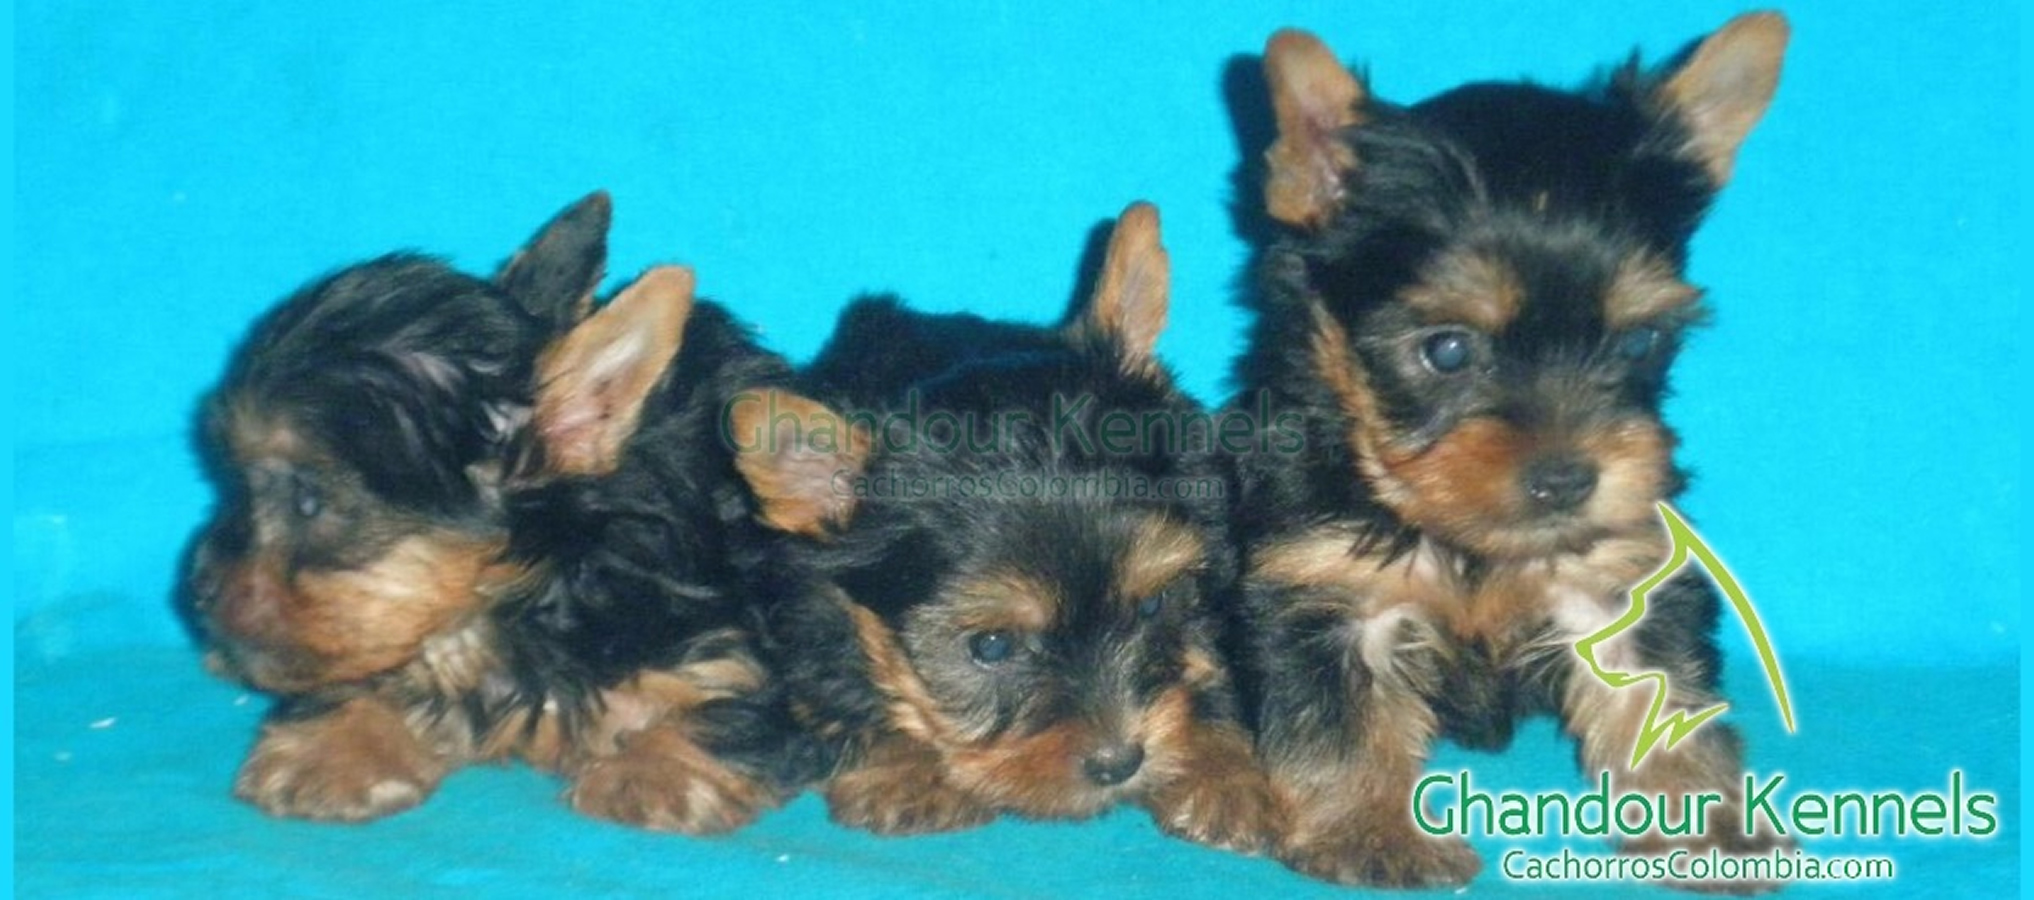 Cachorros Colombia - Yorkshire Terrier